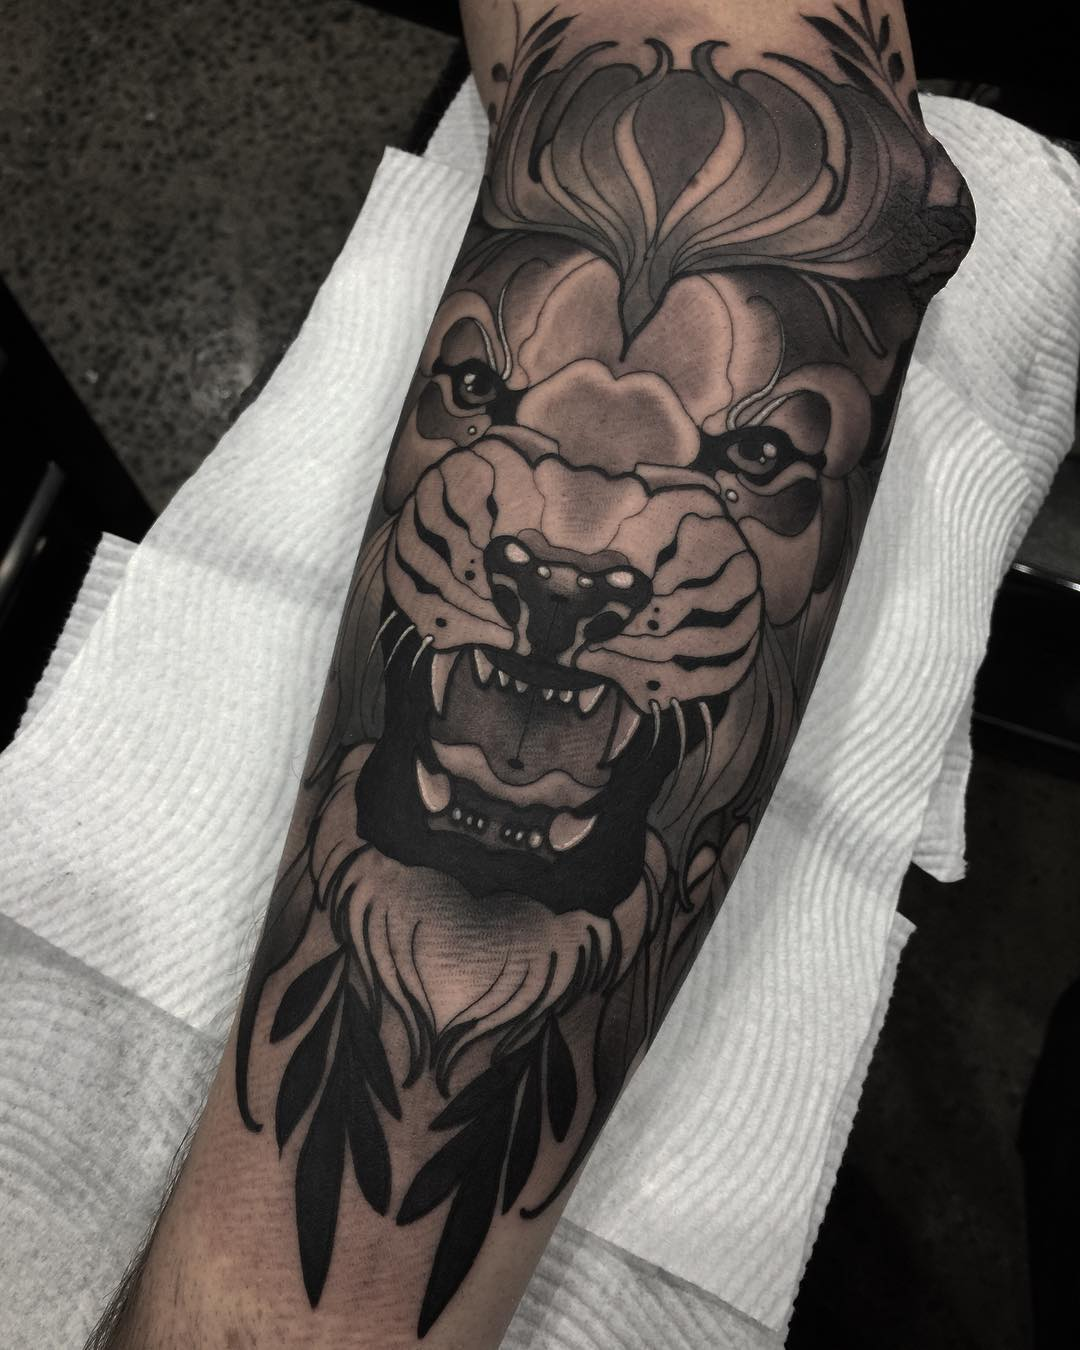 blake byrnes tattoo artist london 01